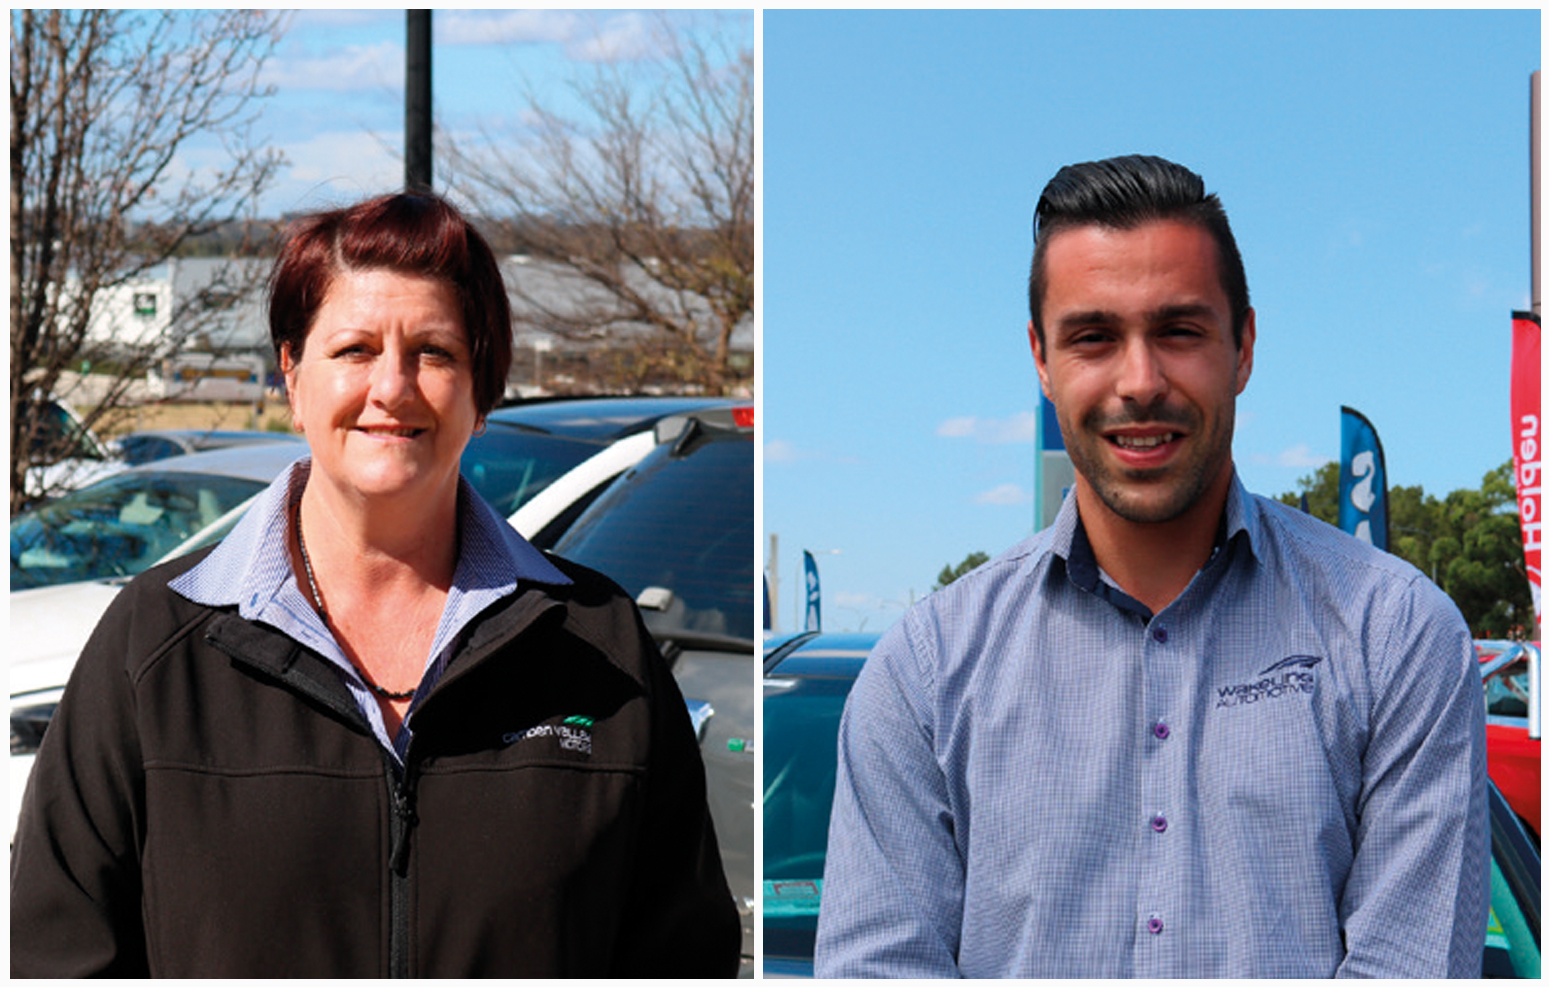 Congratulations to our January Employees of the Month!